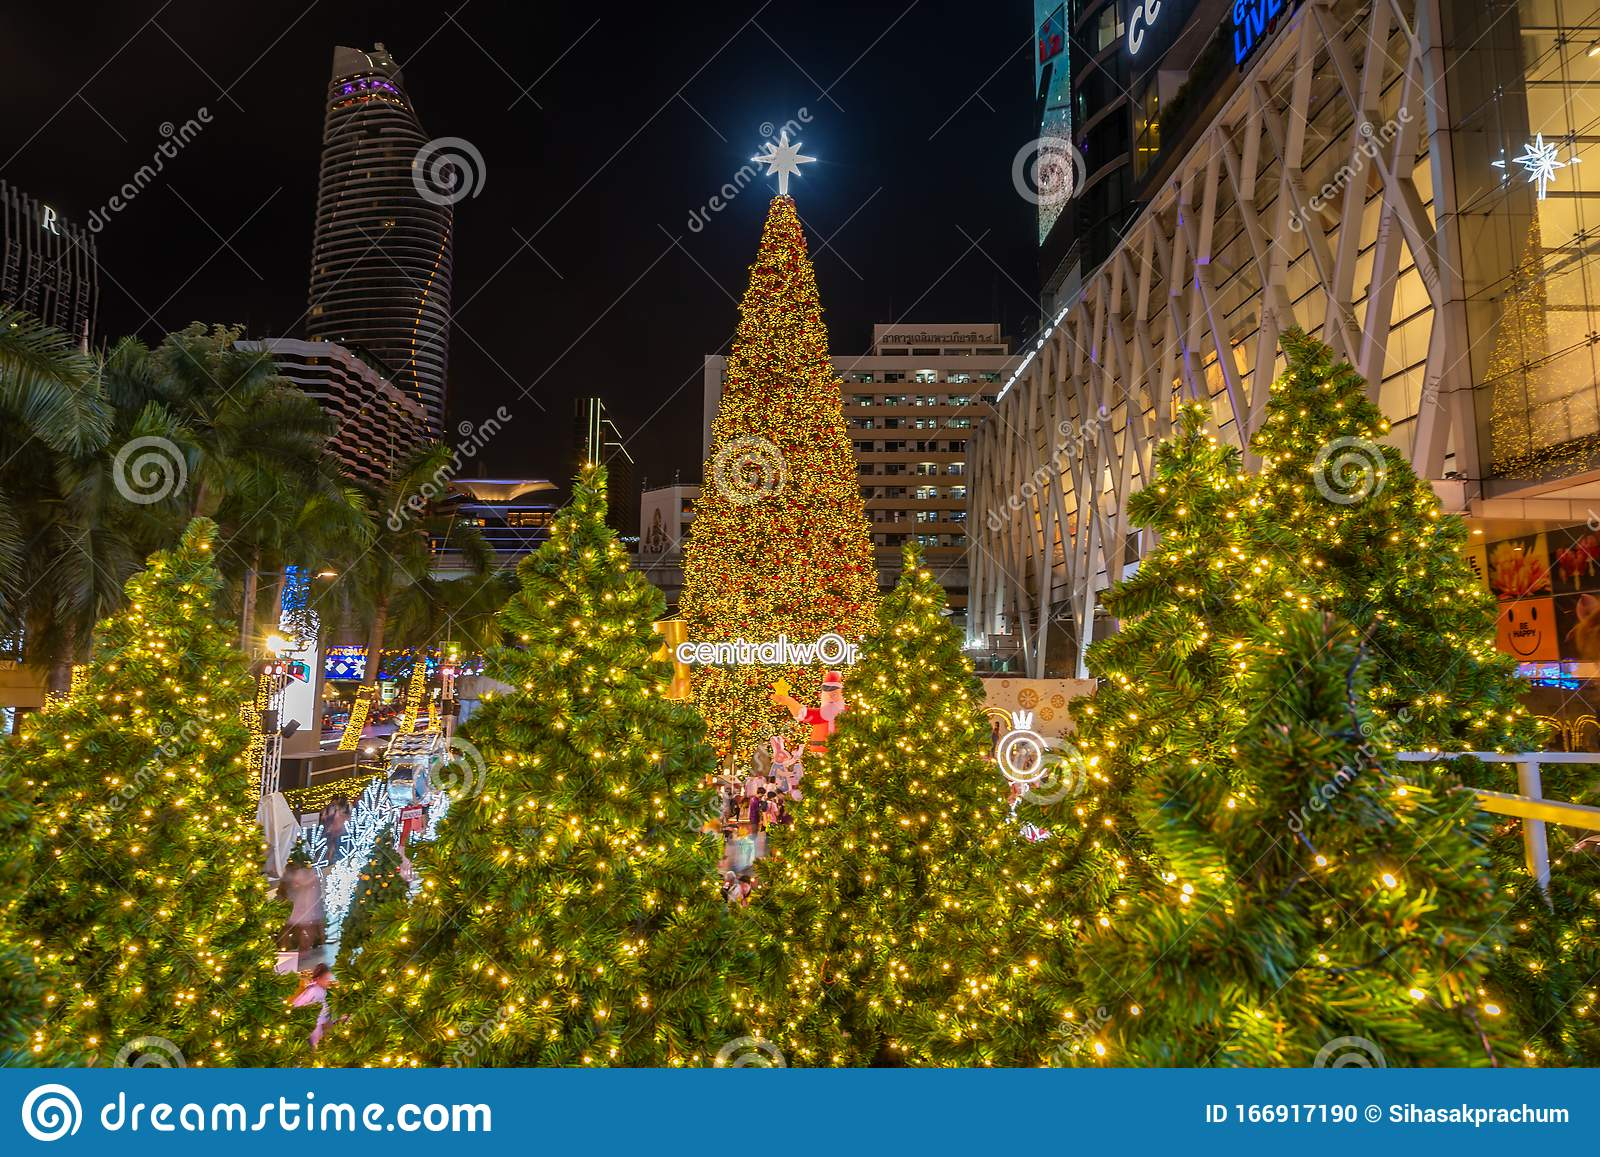 Christmas Celebration 2020 At Central World Christmas Day And Happy New Year Event In Bangkok Editorial Image Image Of Colorful Shop 166917190